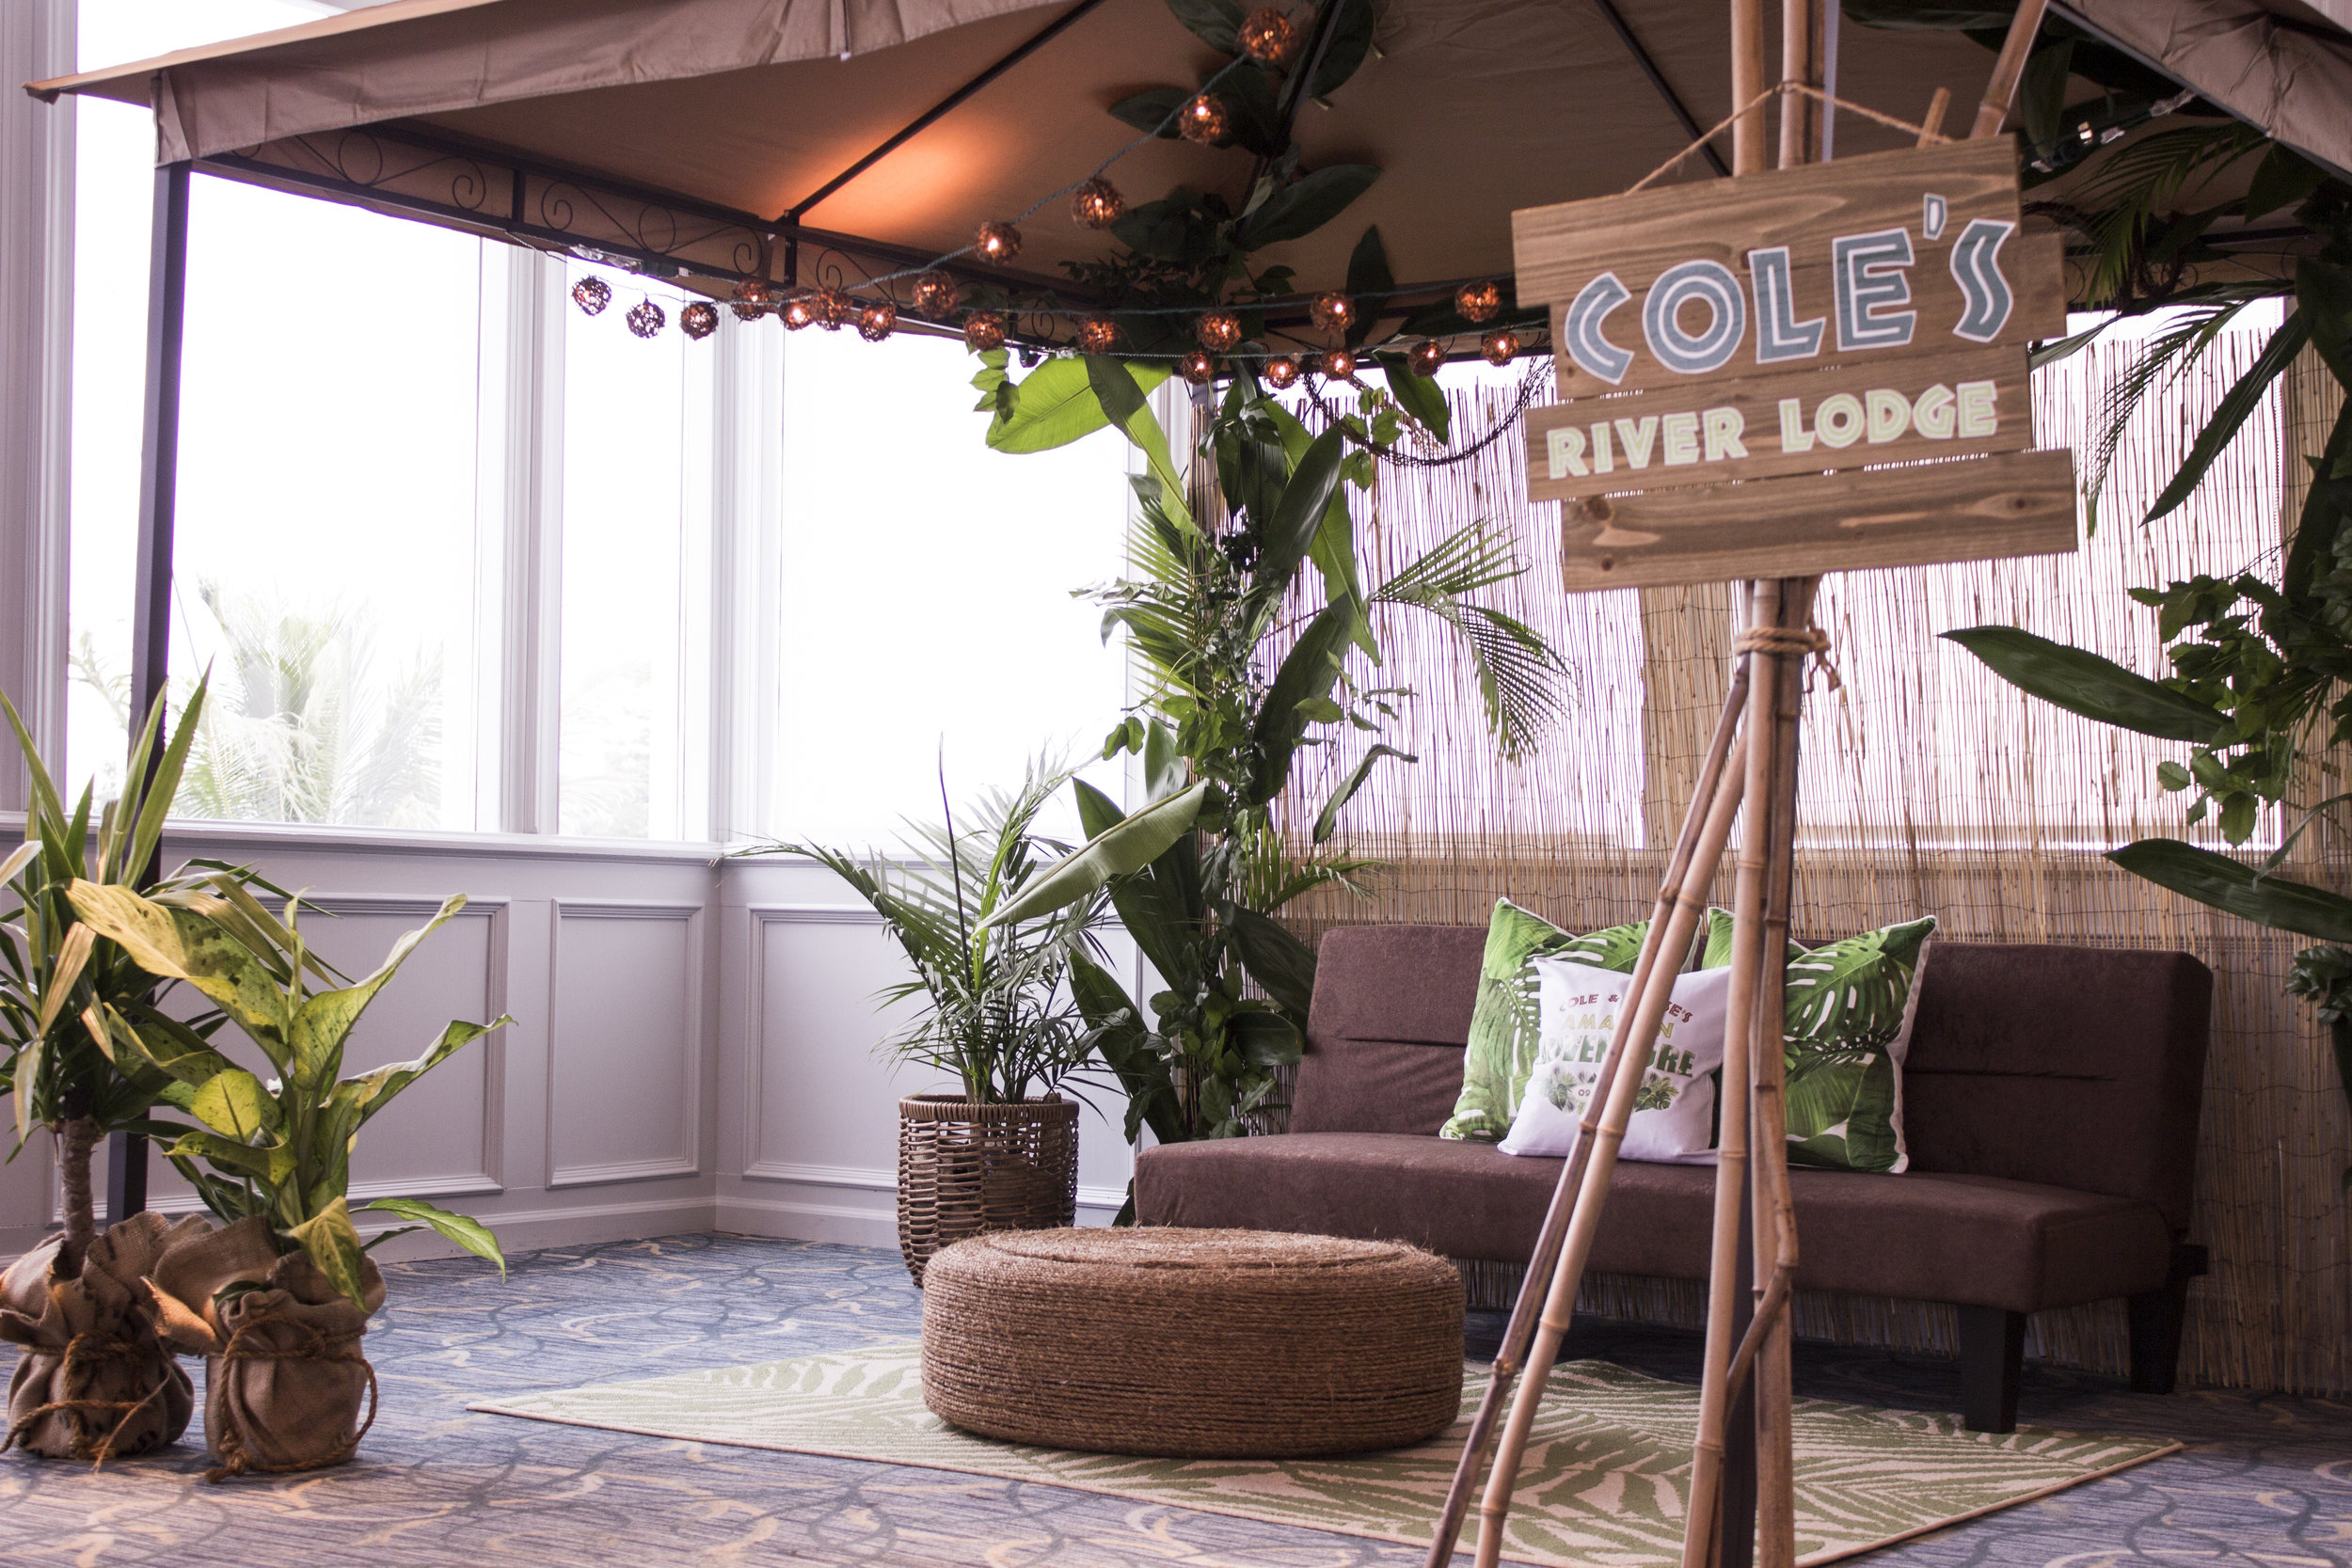 Amazon Jungle B'Nai Mitzvah Cabana Lounge with Rope Ottoman and Live Greens and custom wood sign from Bombshell Graphics at Channel Club by Magnolia West